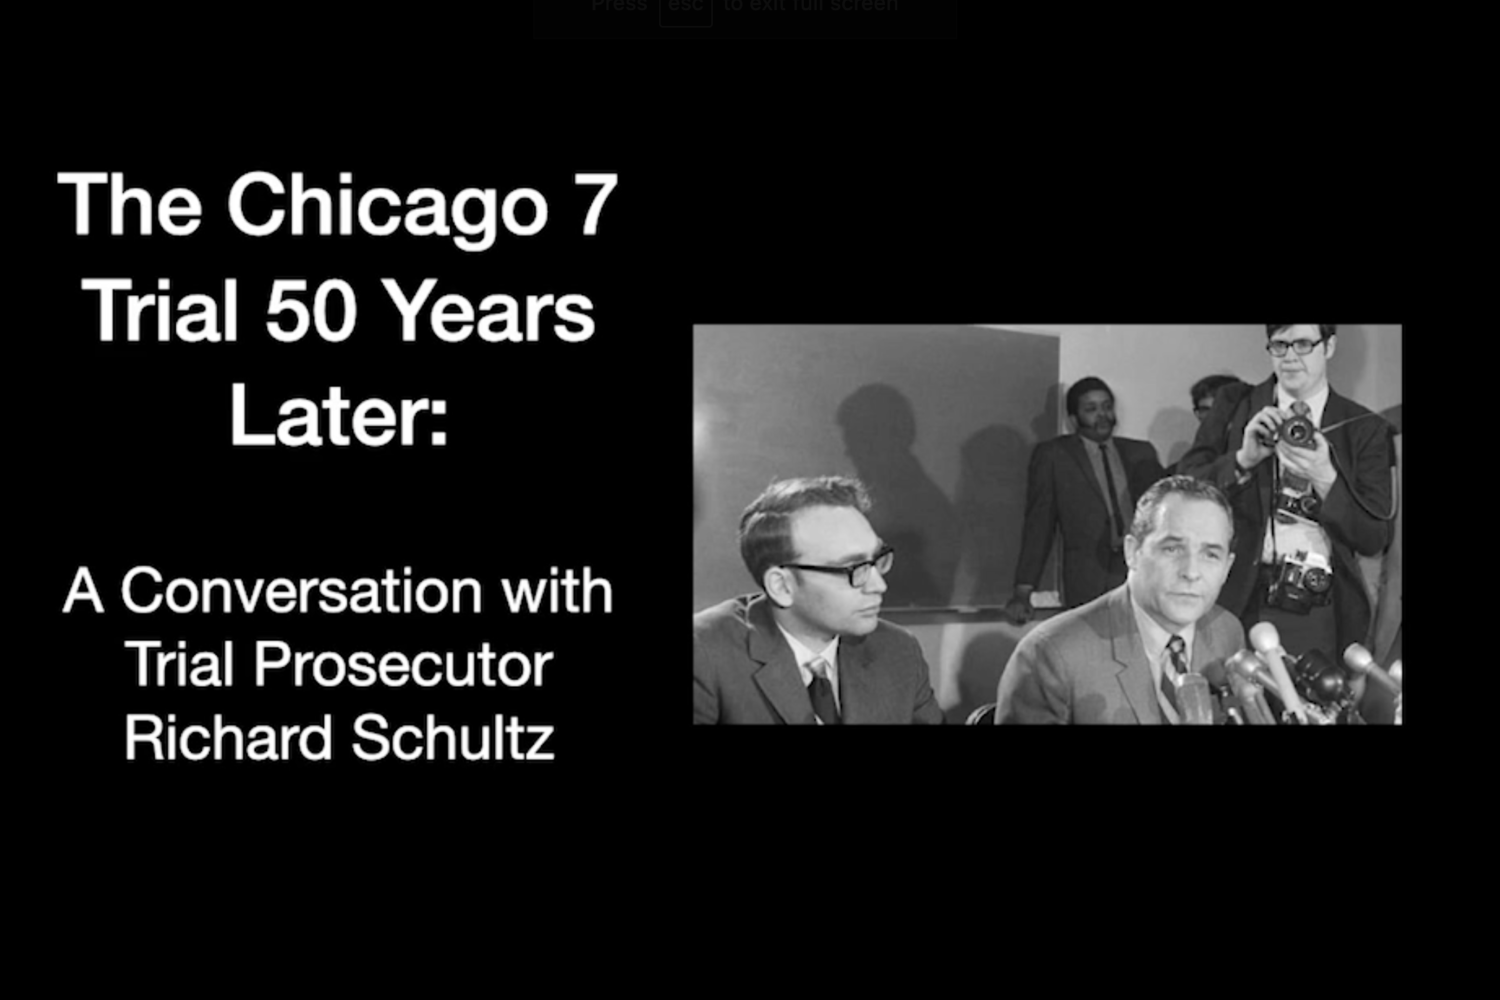 The Chicago Seven Trial 50 Years Later: A Conversation With Trial Prosecutor Richard Schultz